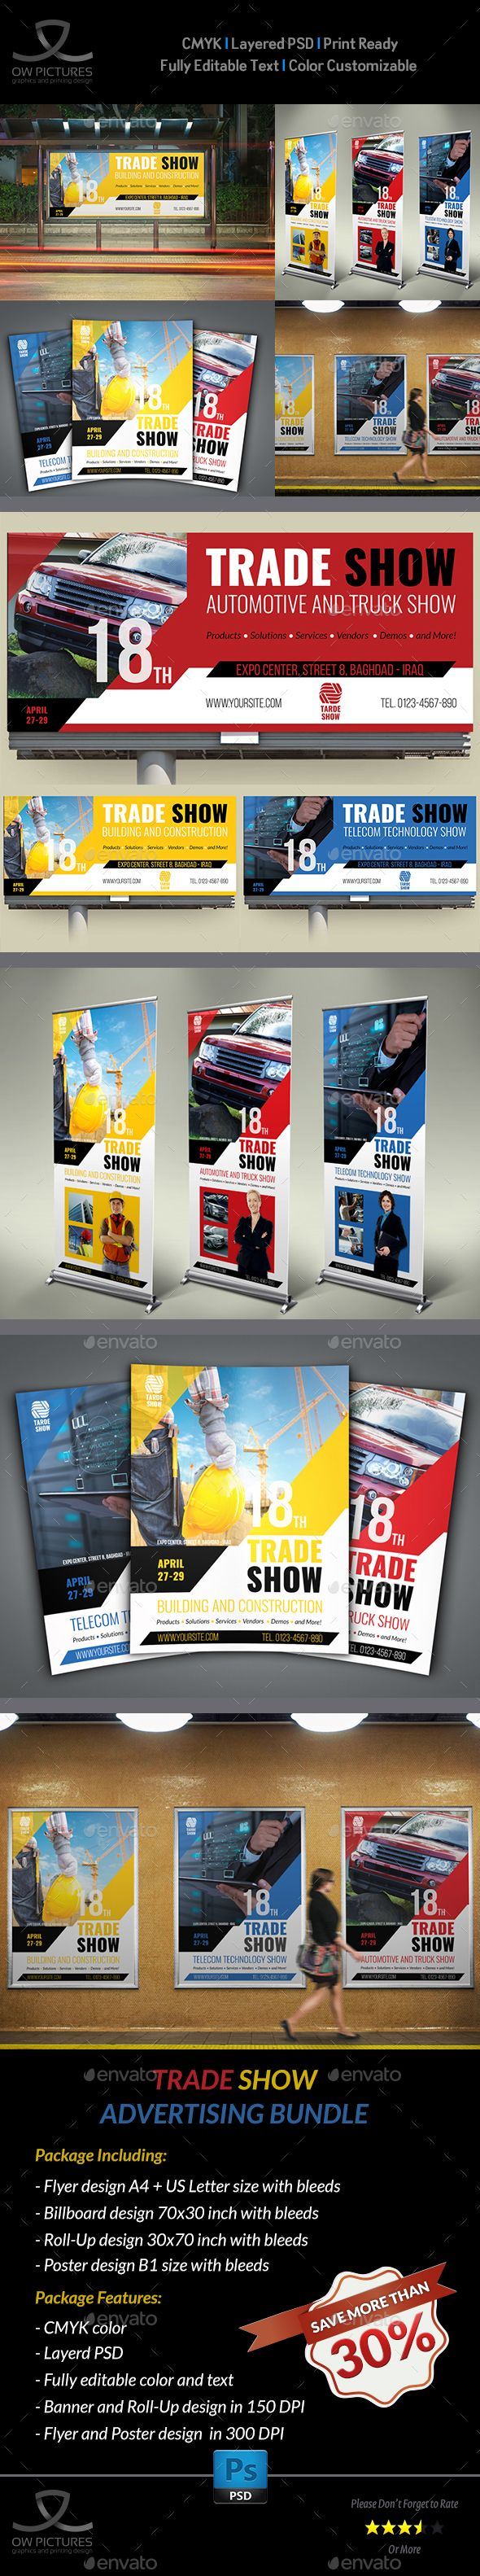 Trade Show Advertising Bundle by OWPictures Advertising Package Description : Tr...